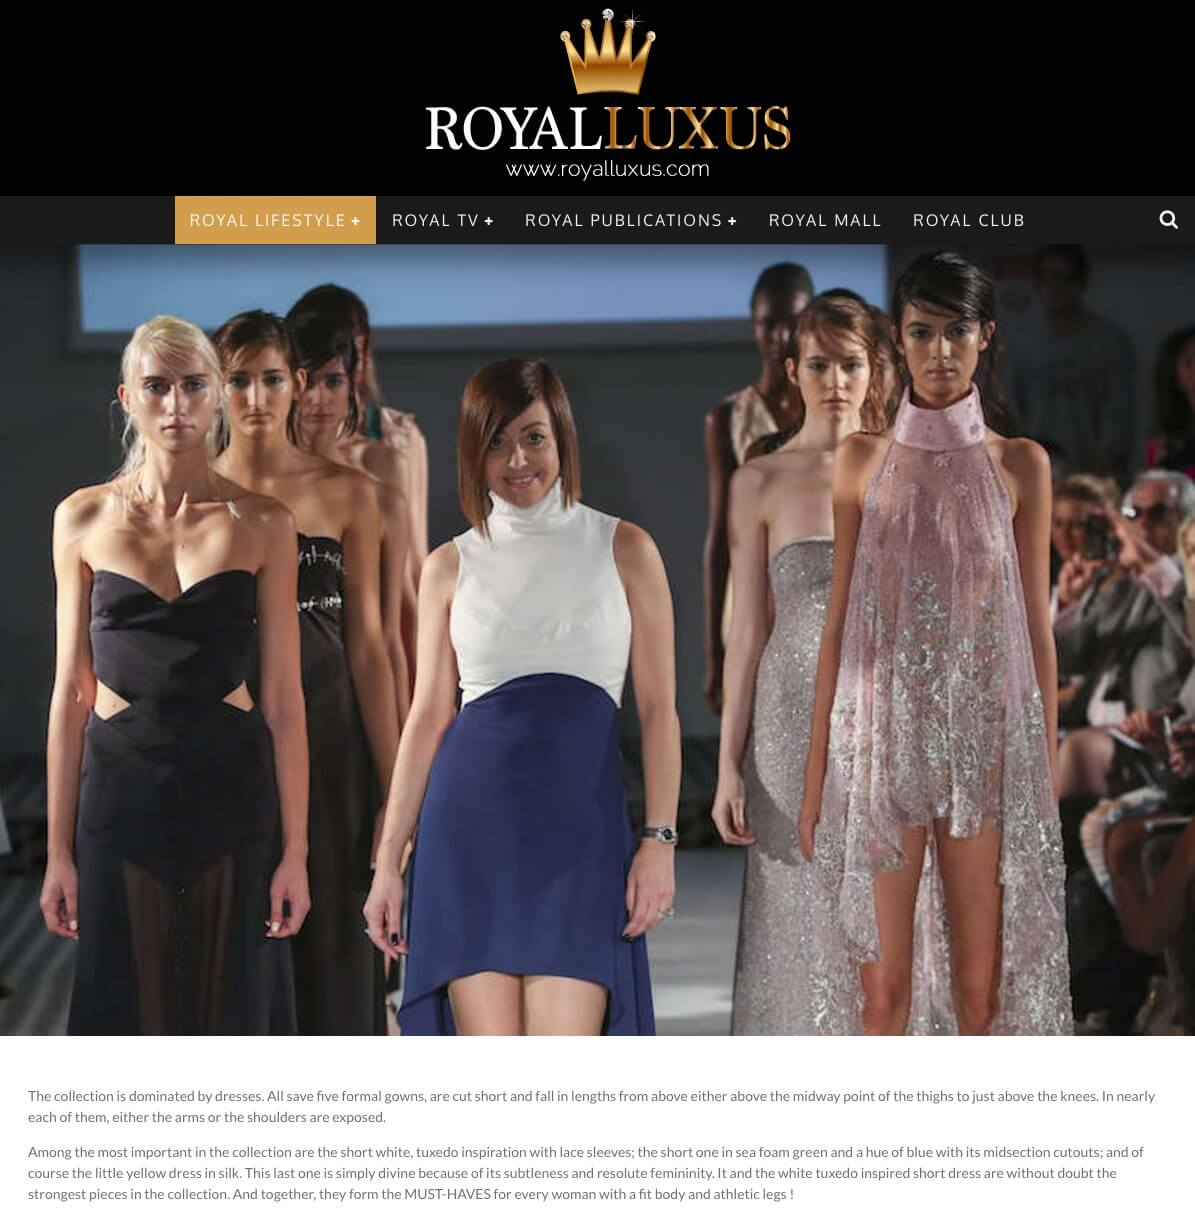 ROYAL LUXUS ss17